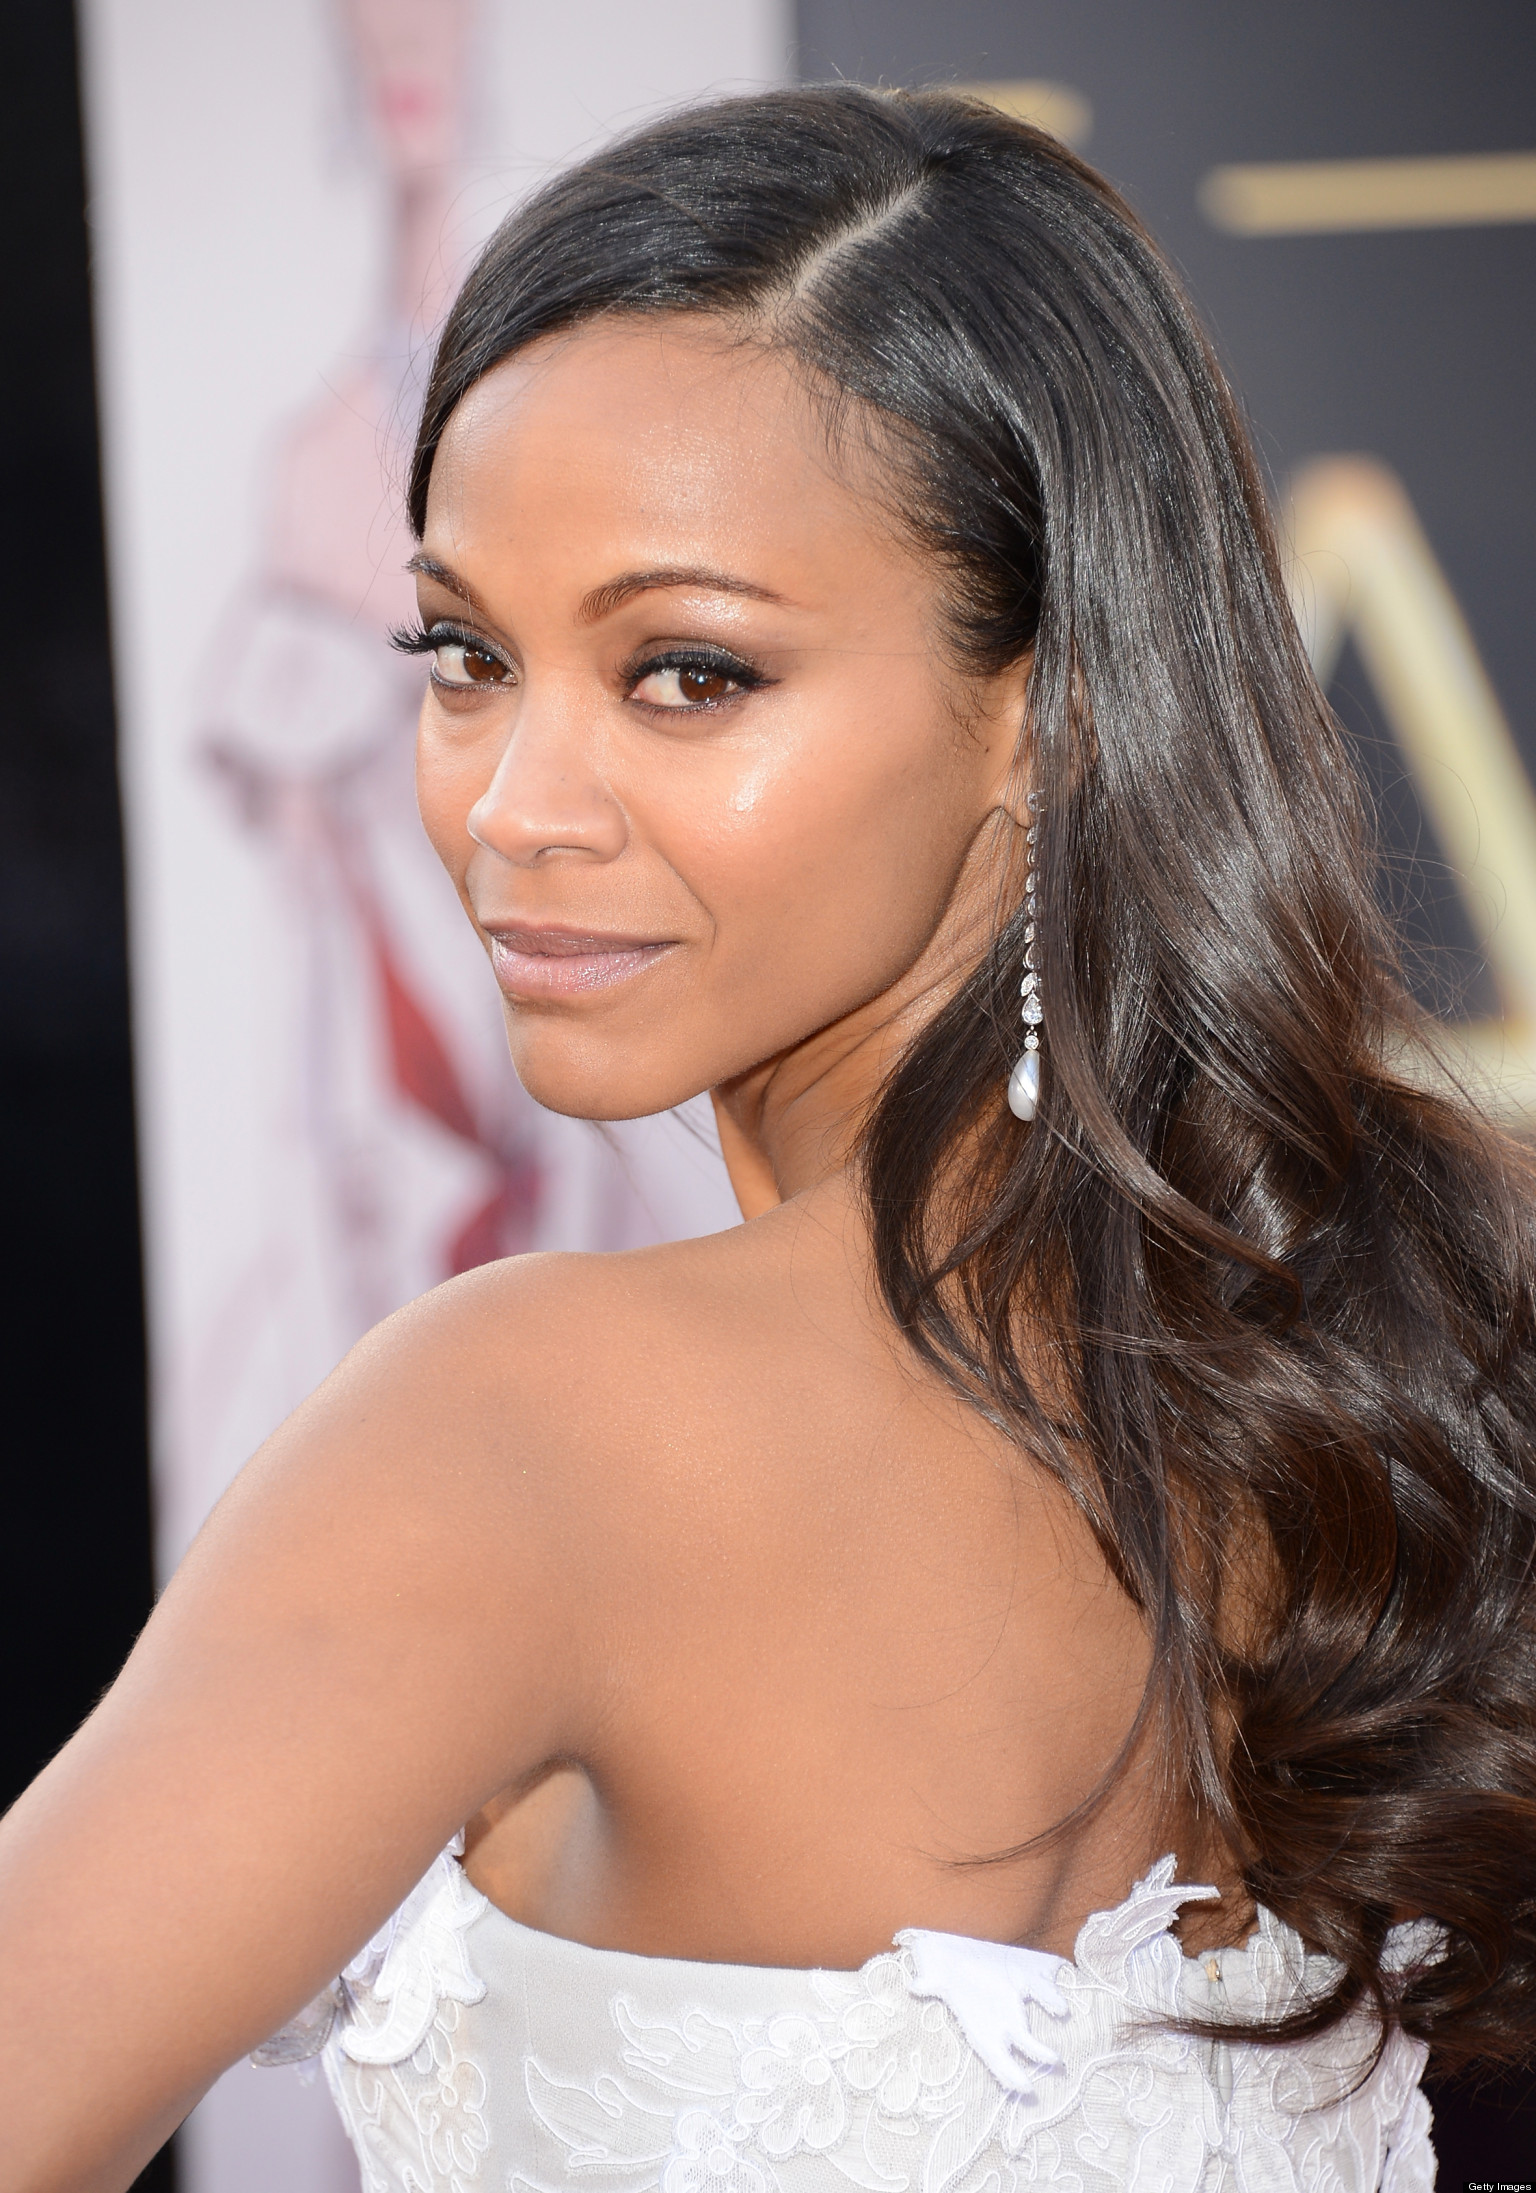 Zoe Saldana Considers Chopping Off Her Hair Zoe Saldana